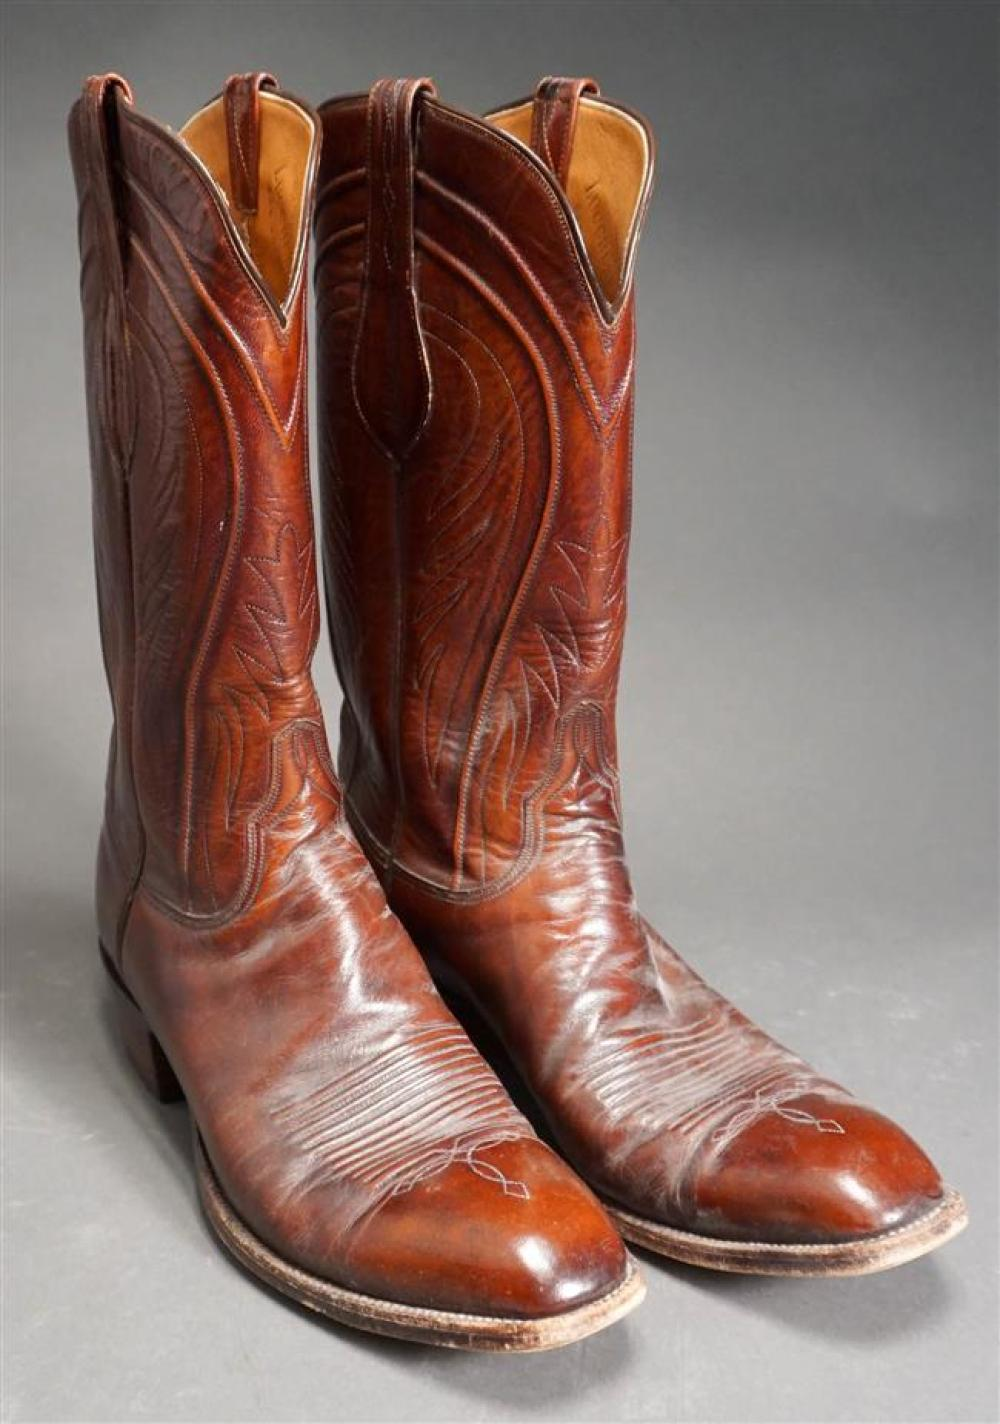 Pair Lucchese Leather Riding Boots, Size 12A